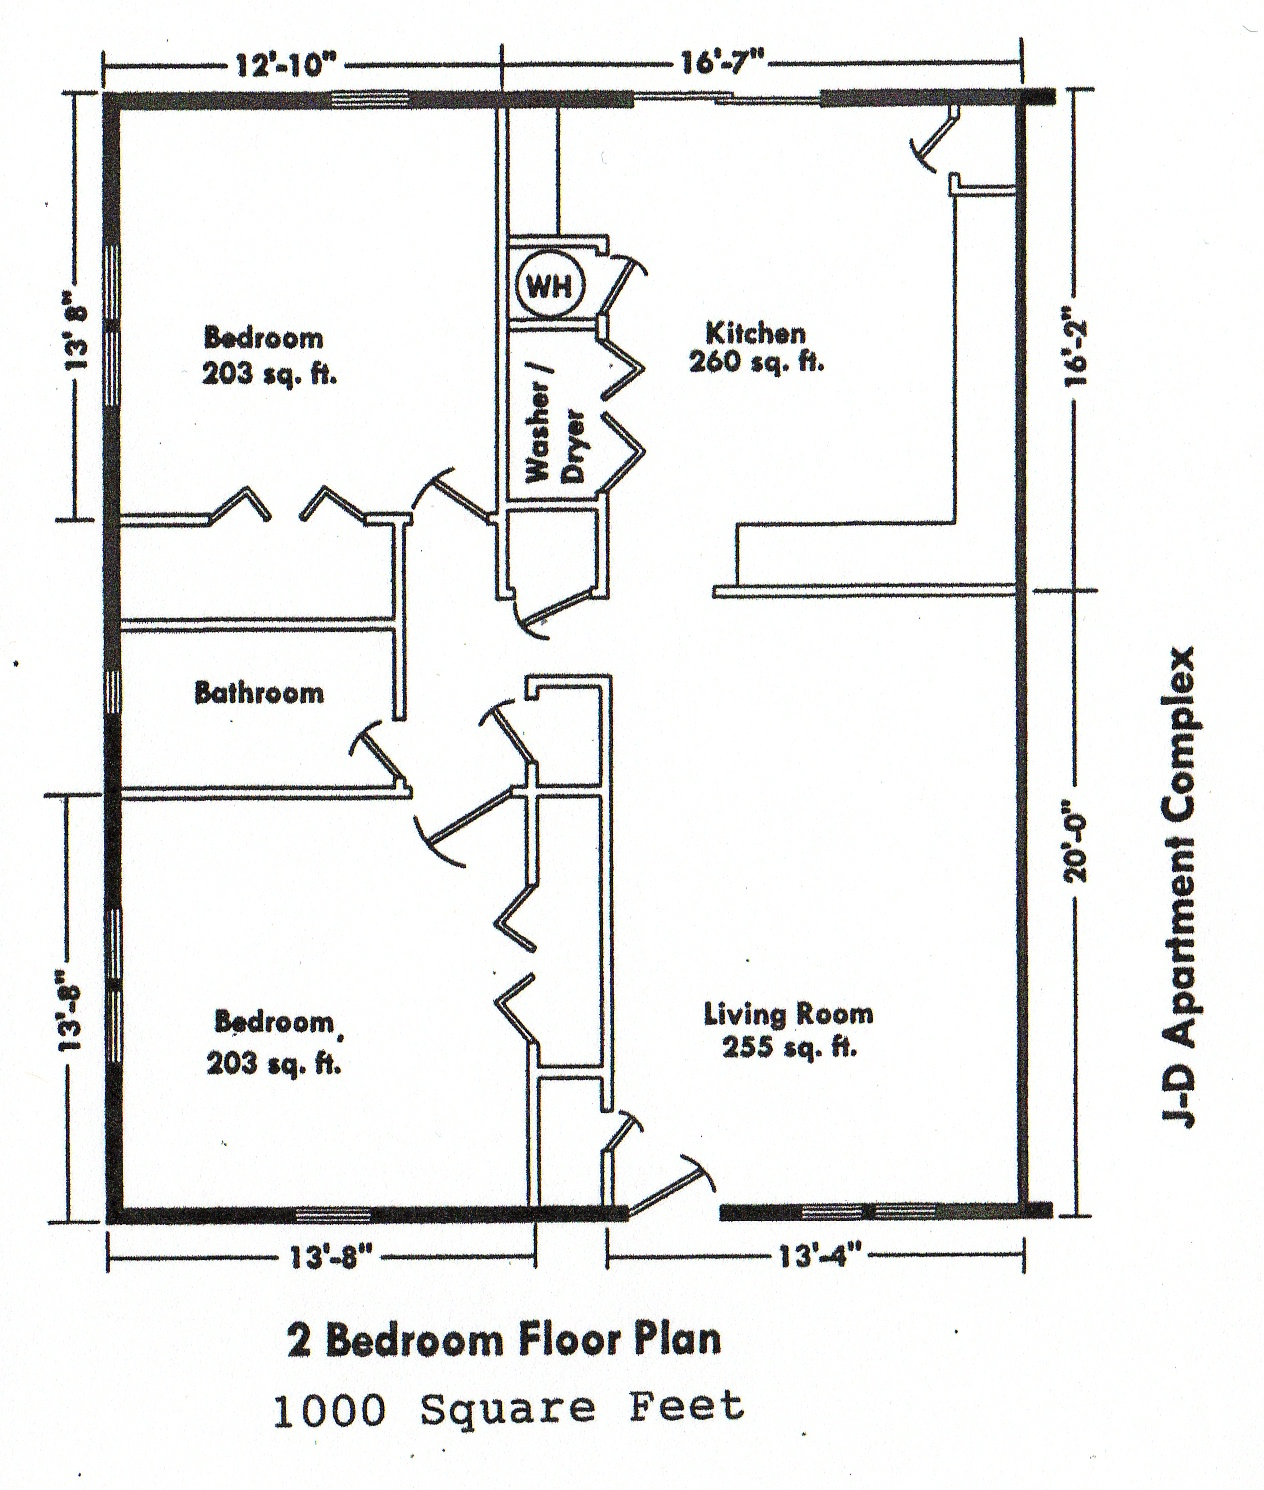 Modular home modular homes 2 bedroom floor plans for House plans with 2 bedrooms in basement